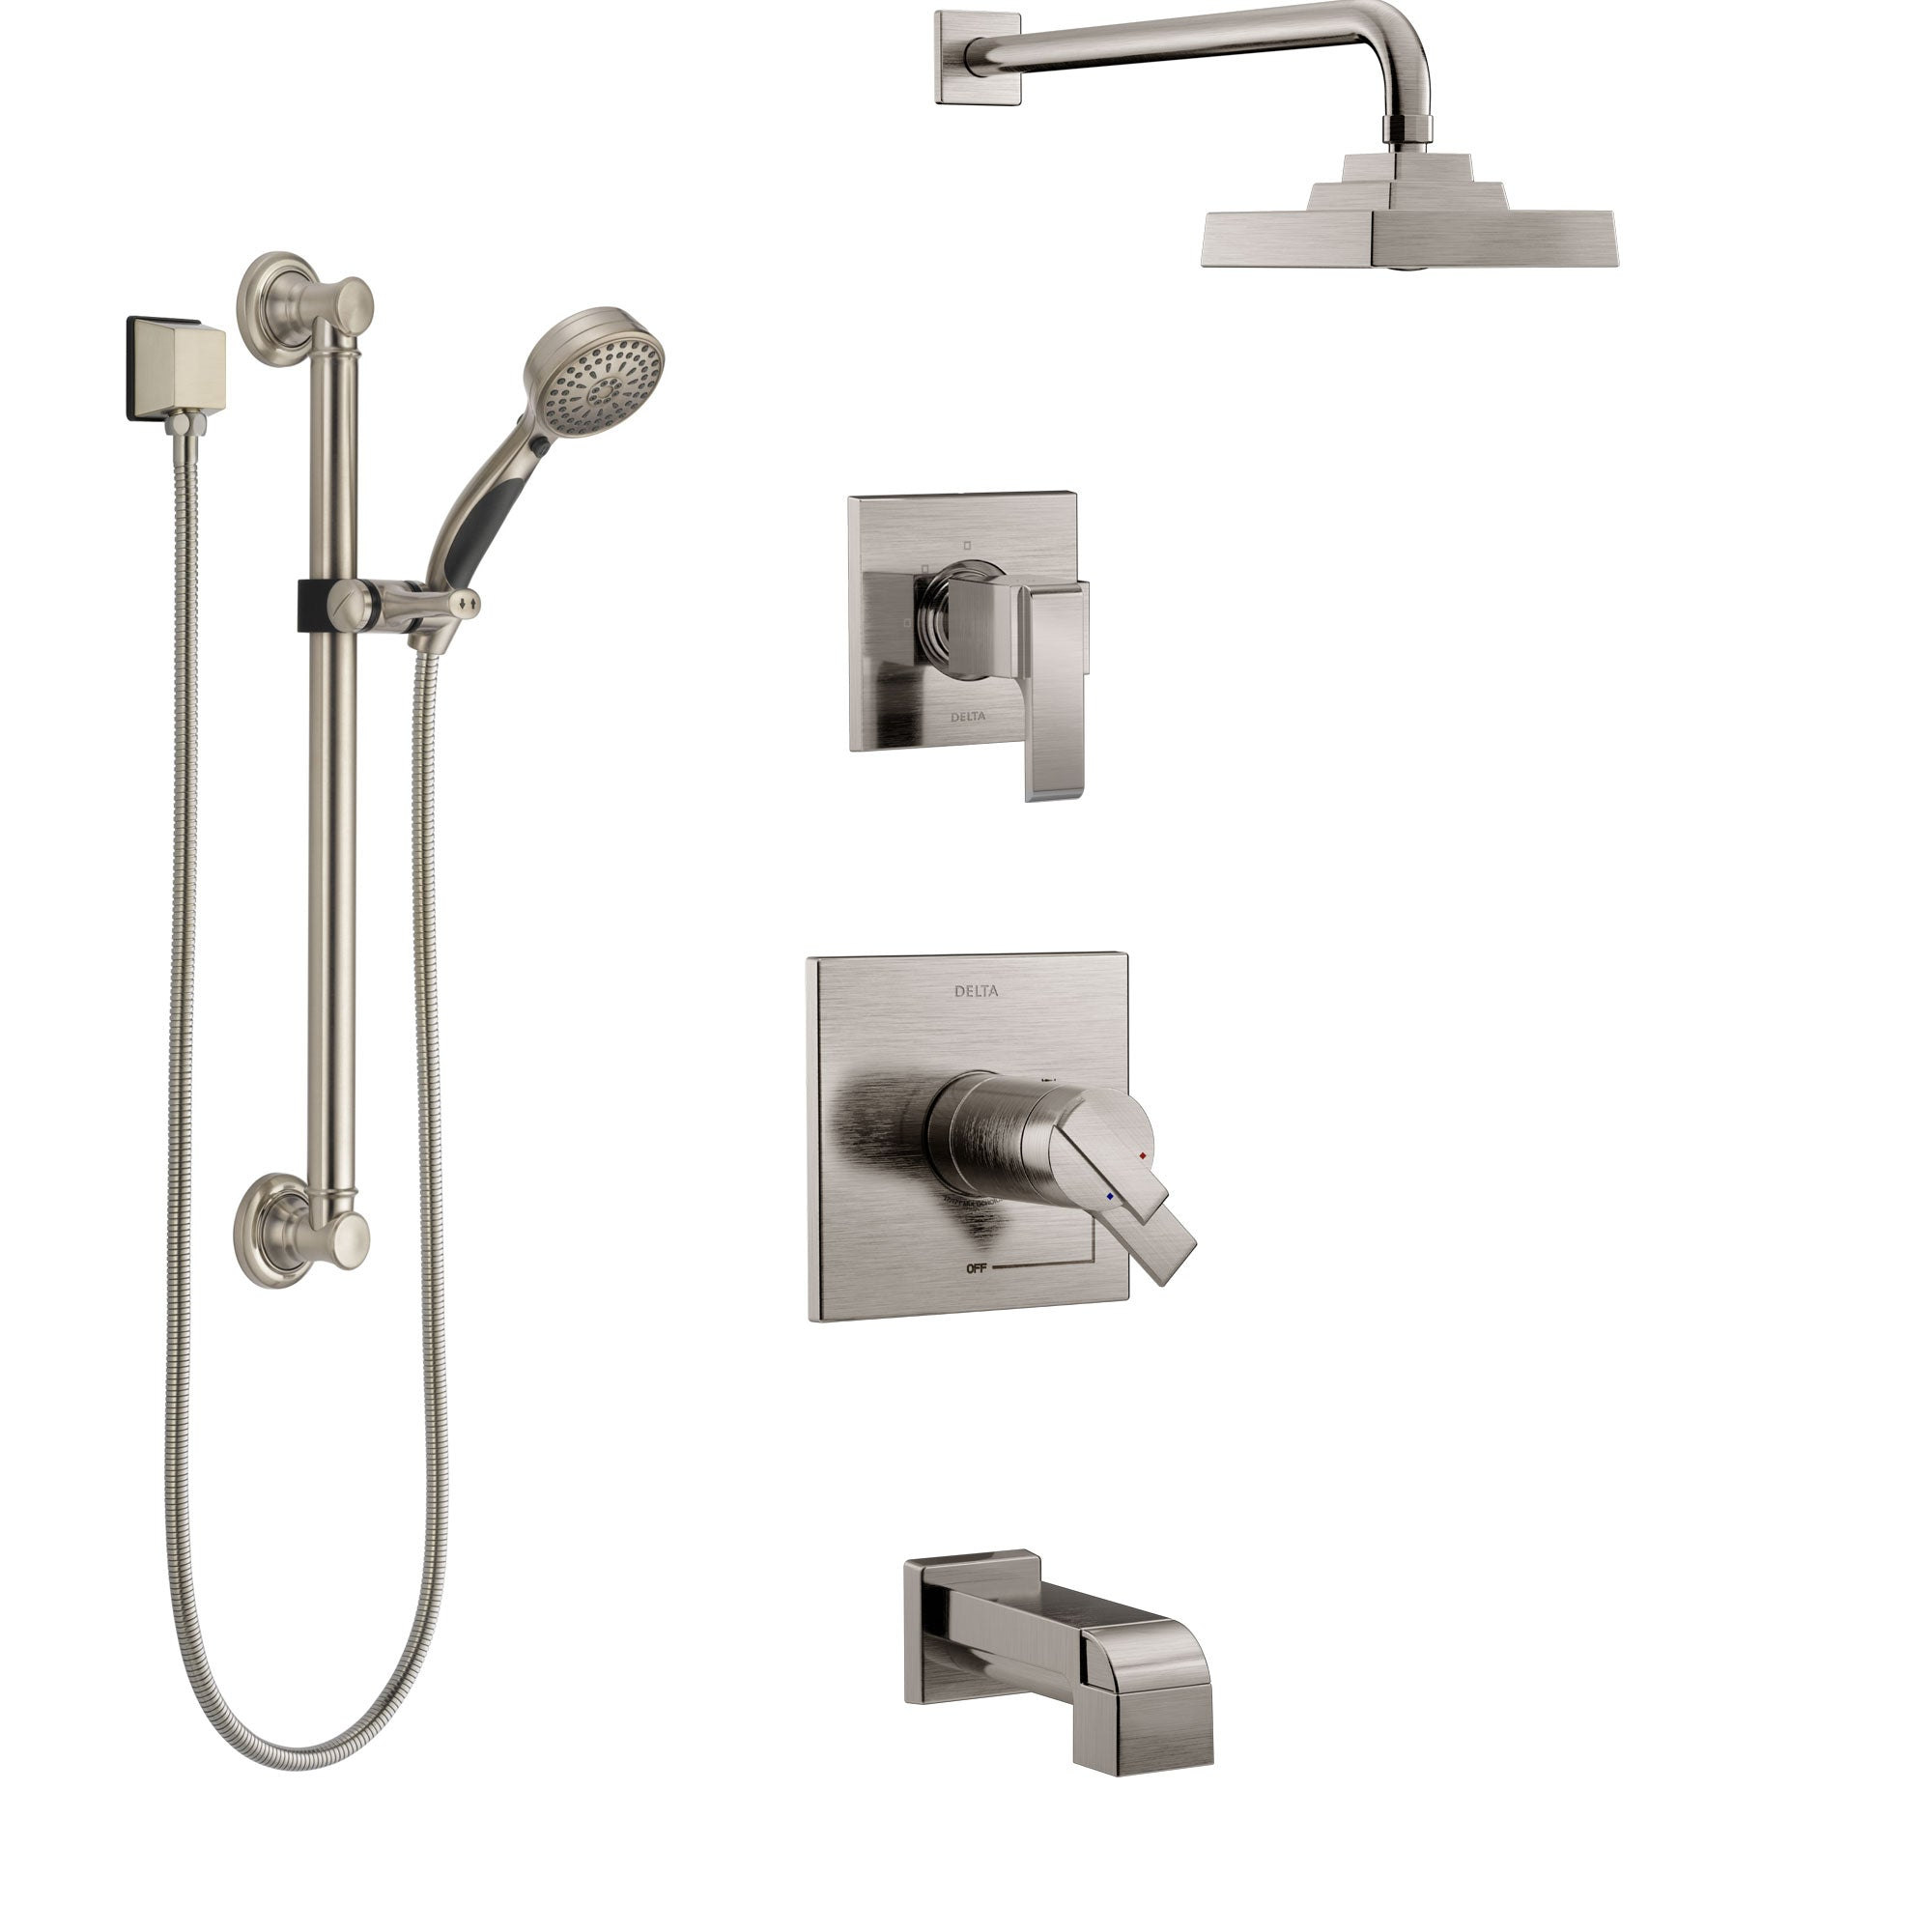 Delta Ara Stainless Steel Finish Dual Thermostatic Control Tub and Shower System, Diverter, Showerhead, and Hand Shower with Grab Bar SS17T4672SS3